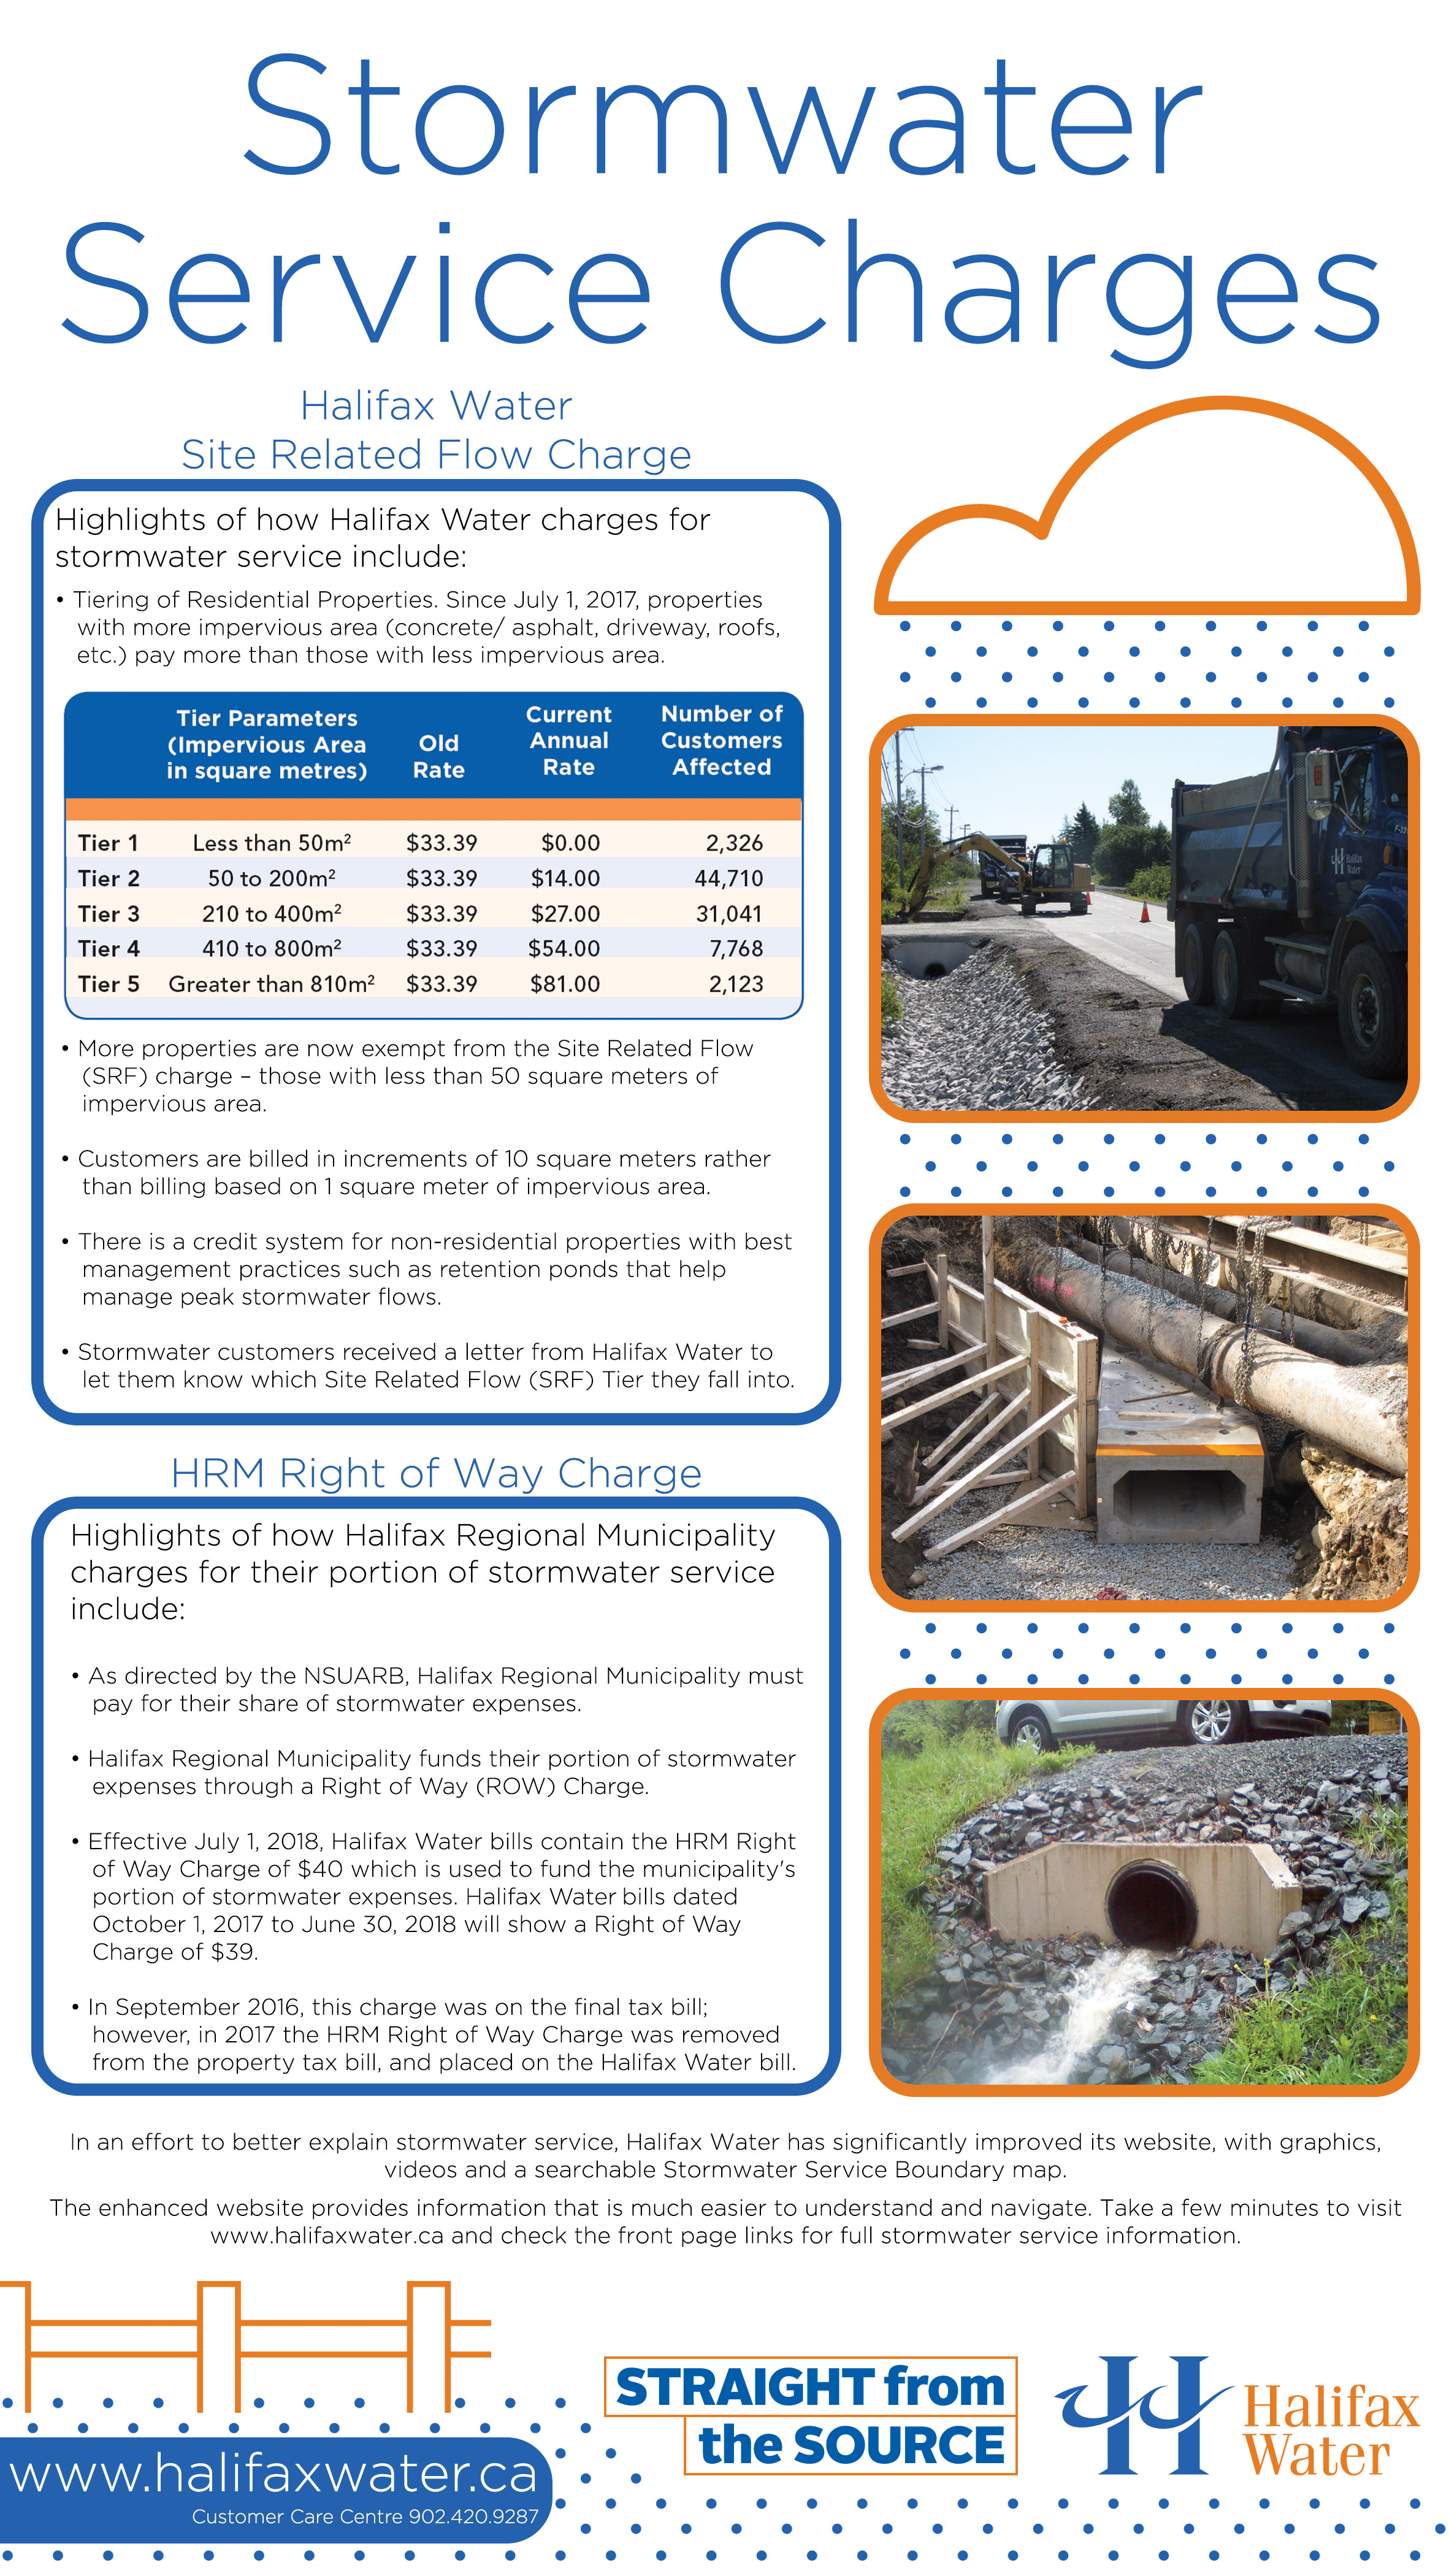 A summary of Stormwater Service Charges as of July 1, 2018